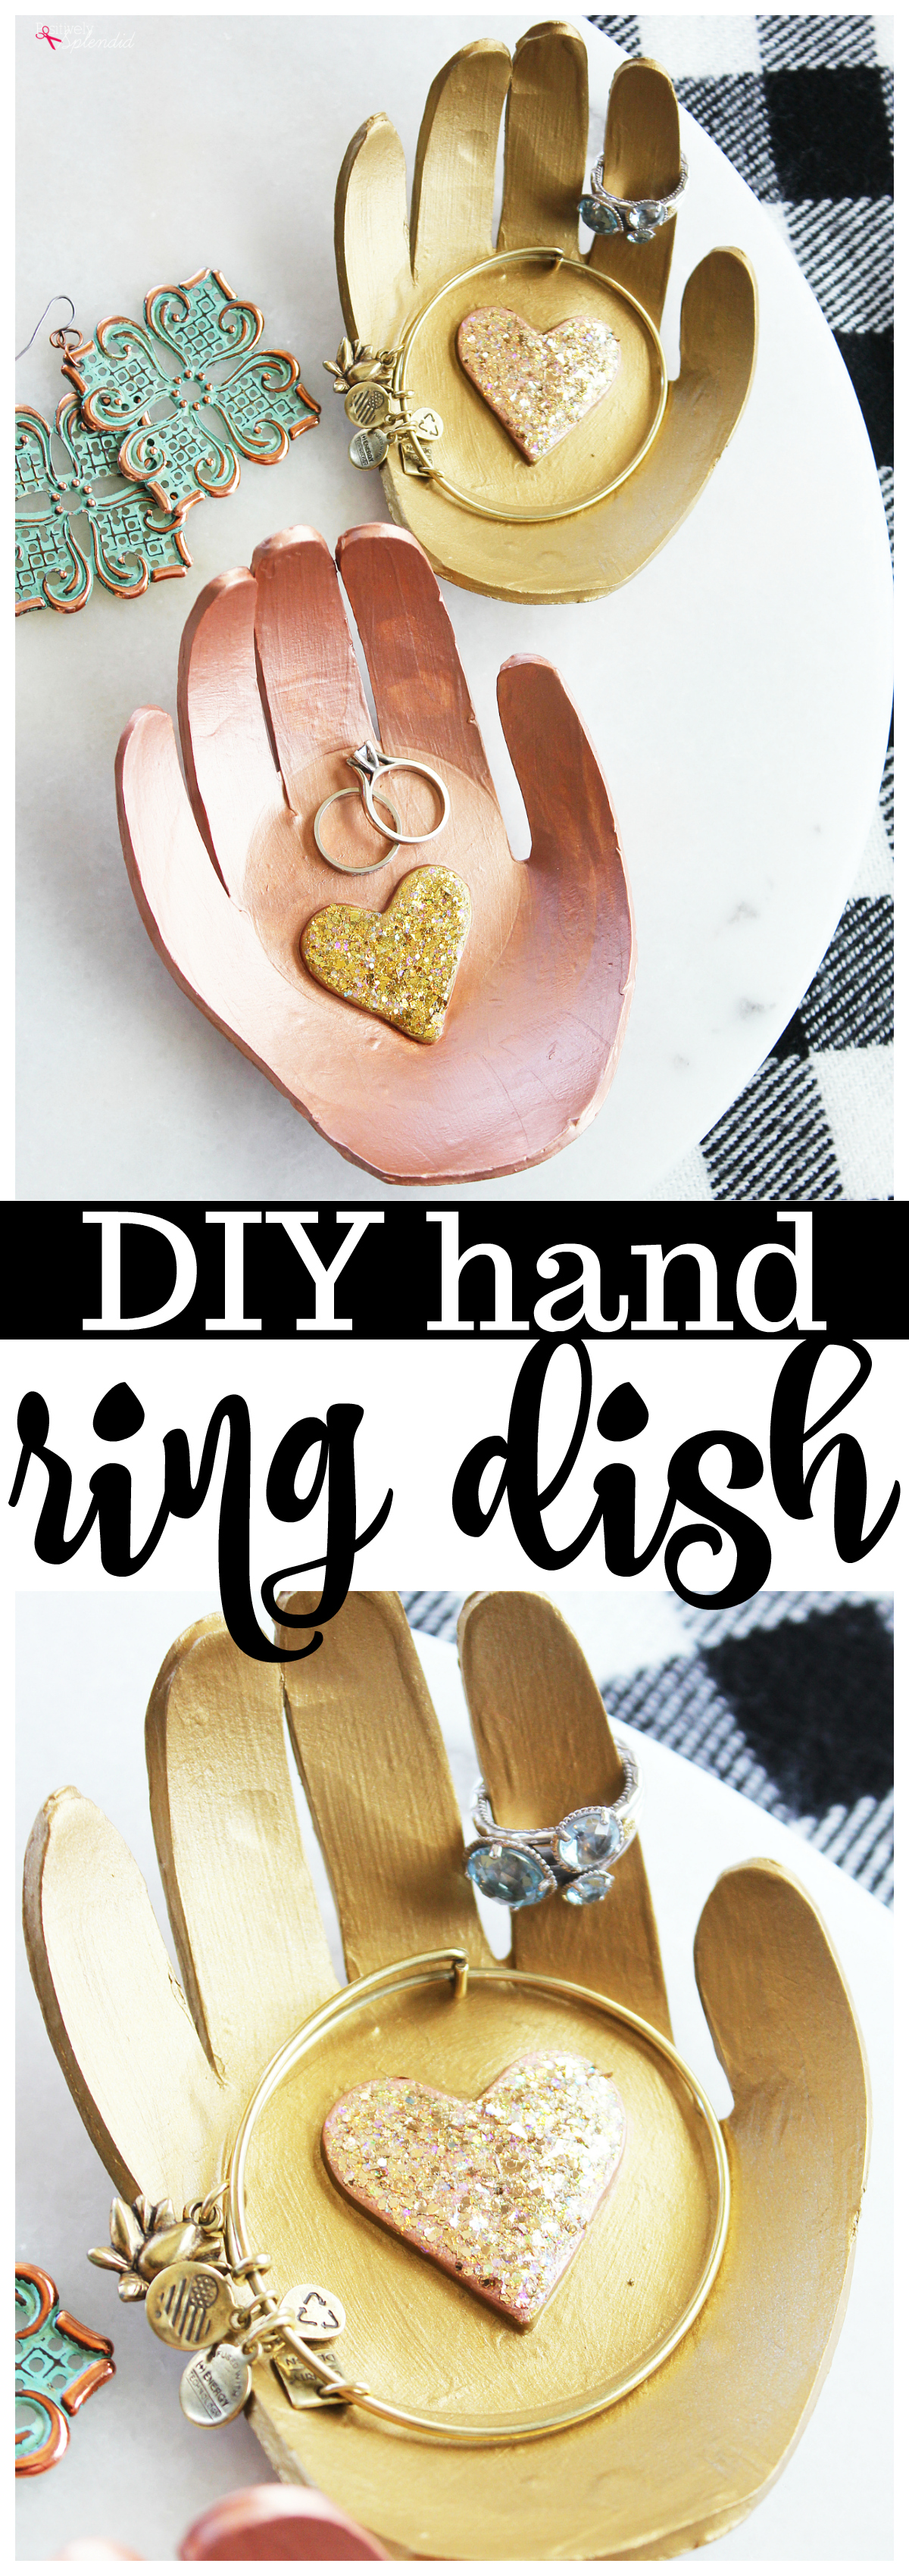 DIY Hand Ring Dish - A great handmade gift idea to make with kids' handprints!